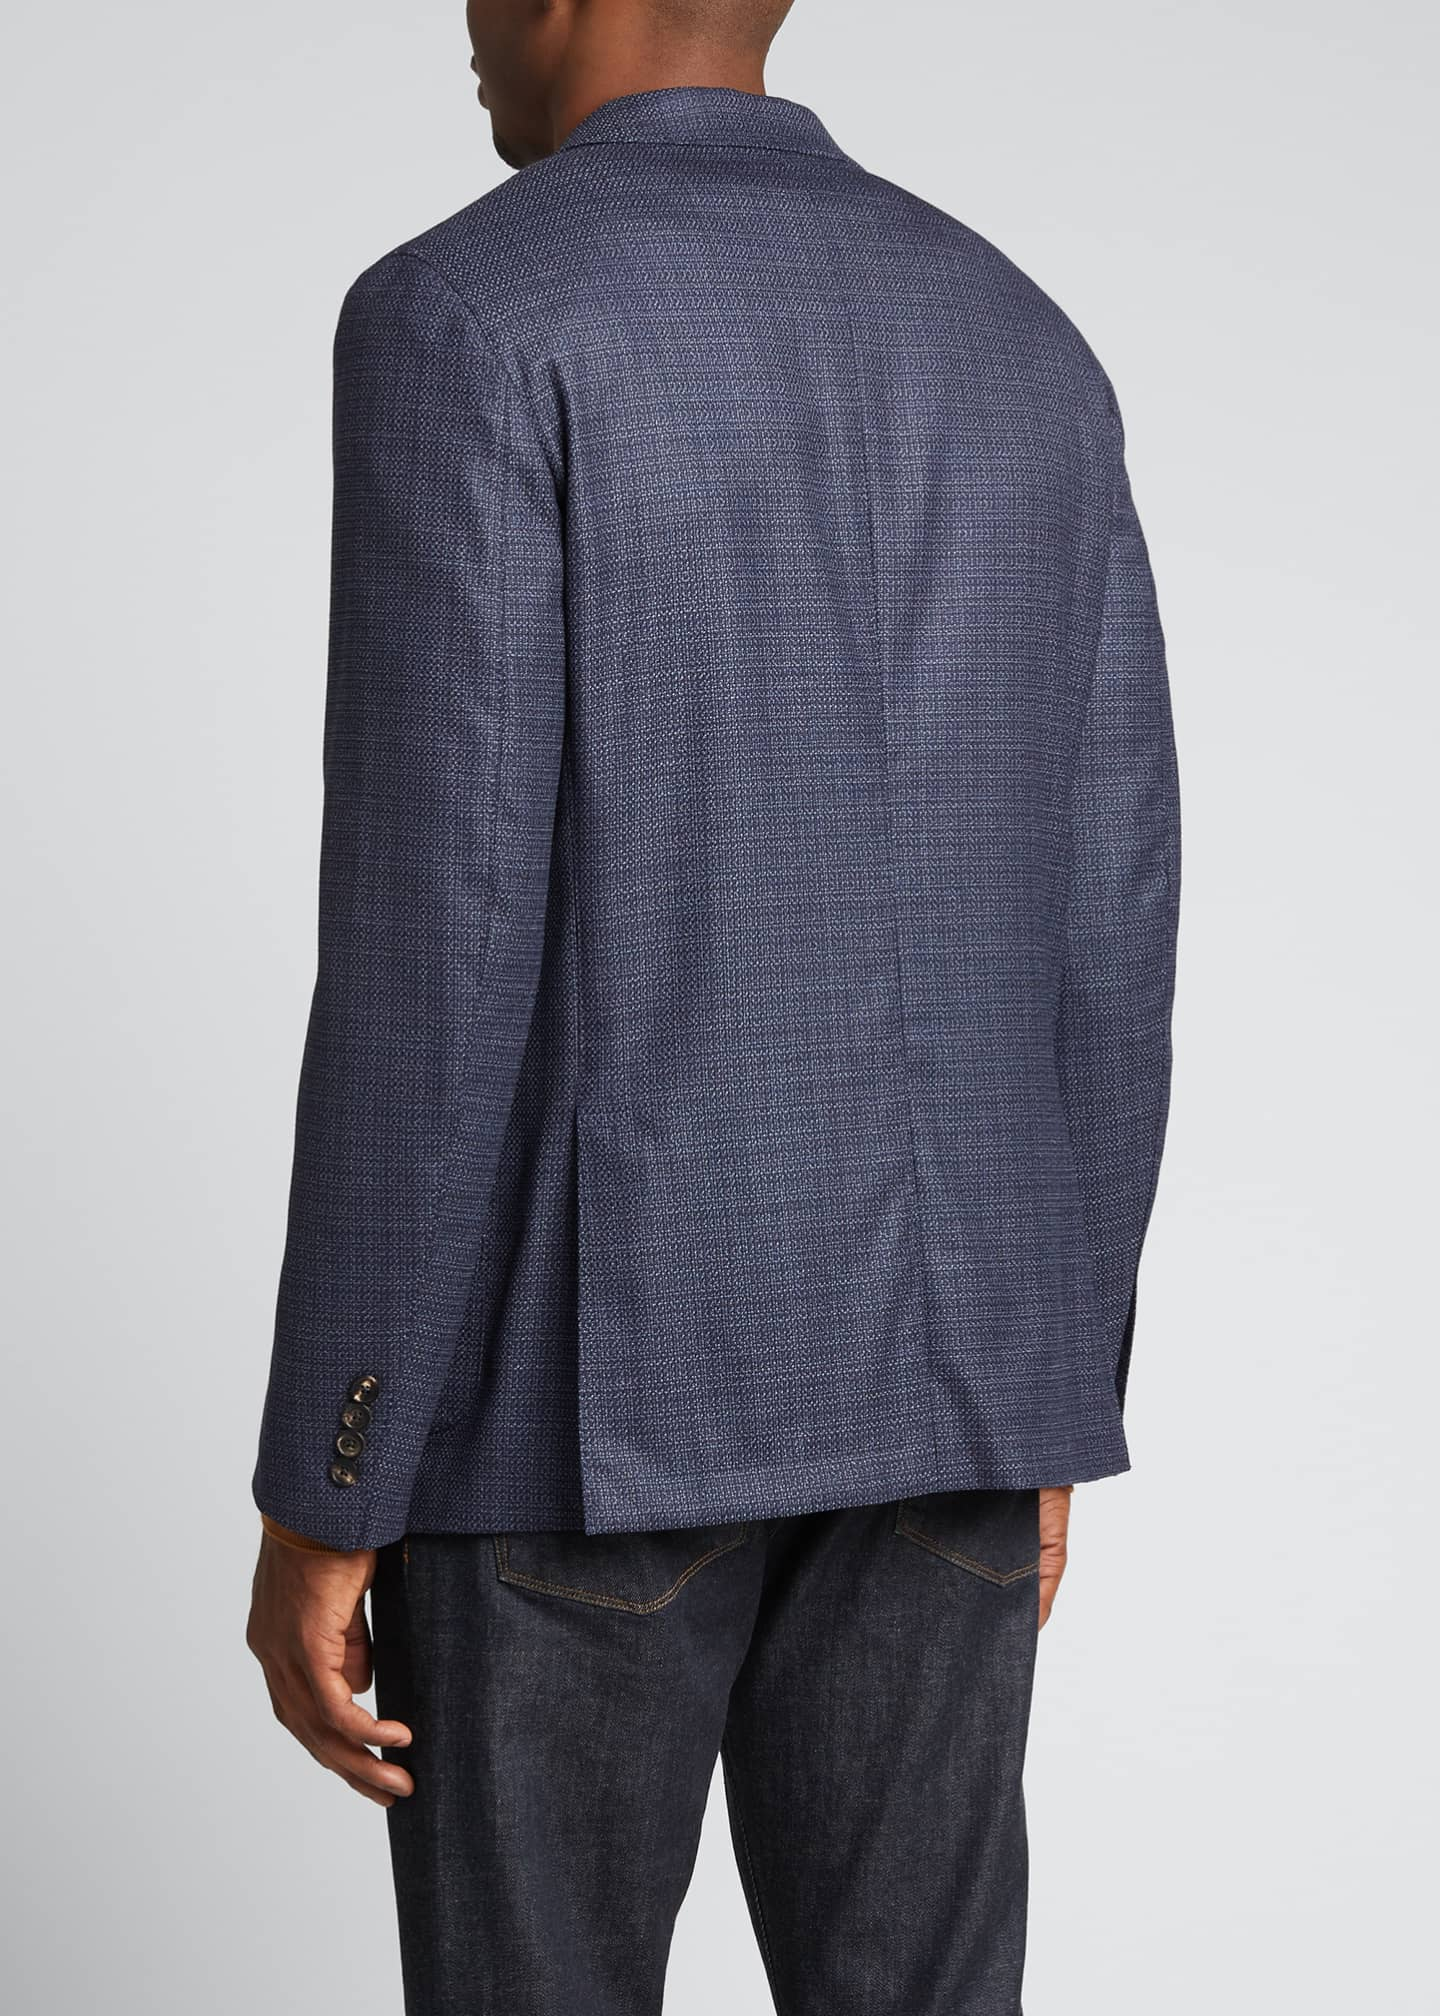 Image 2 of 5: Men's Heathered Solid Blazer